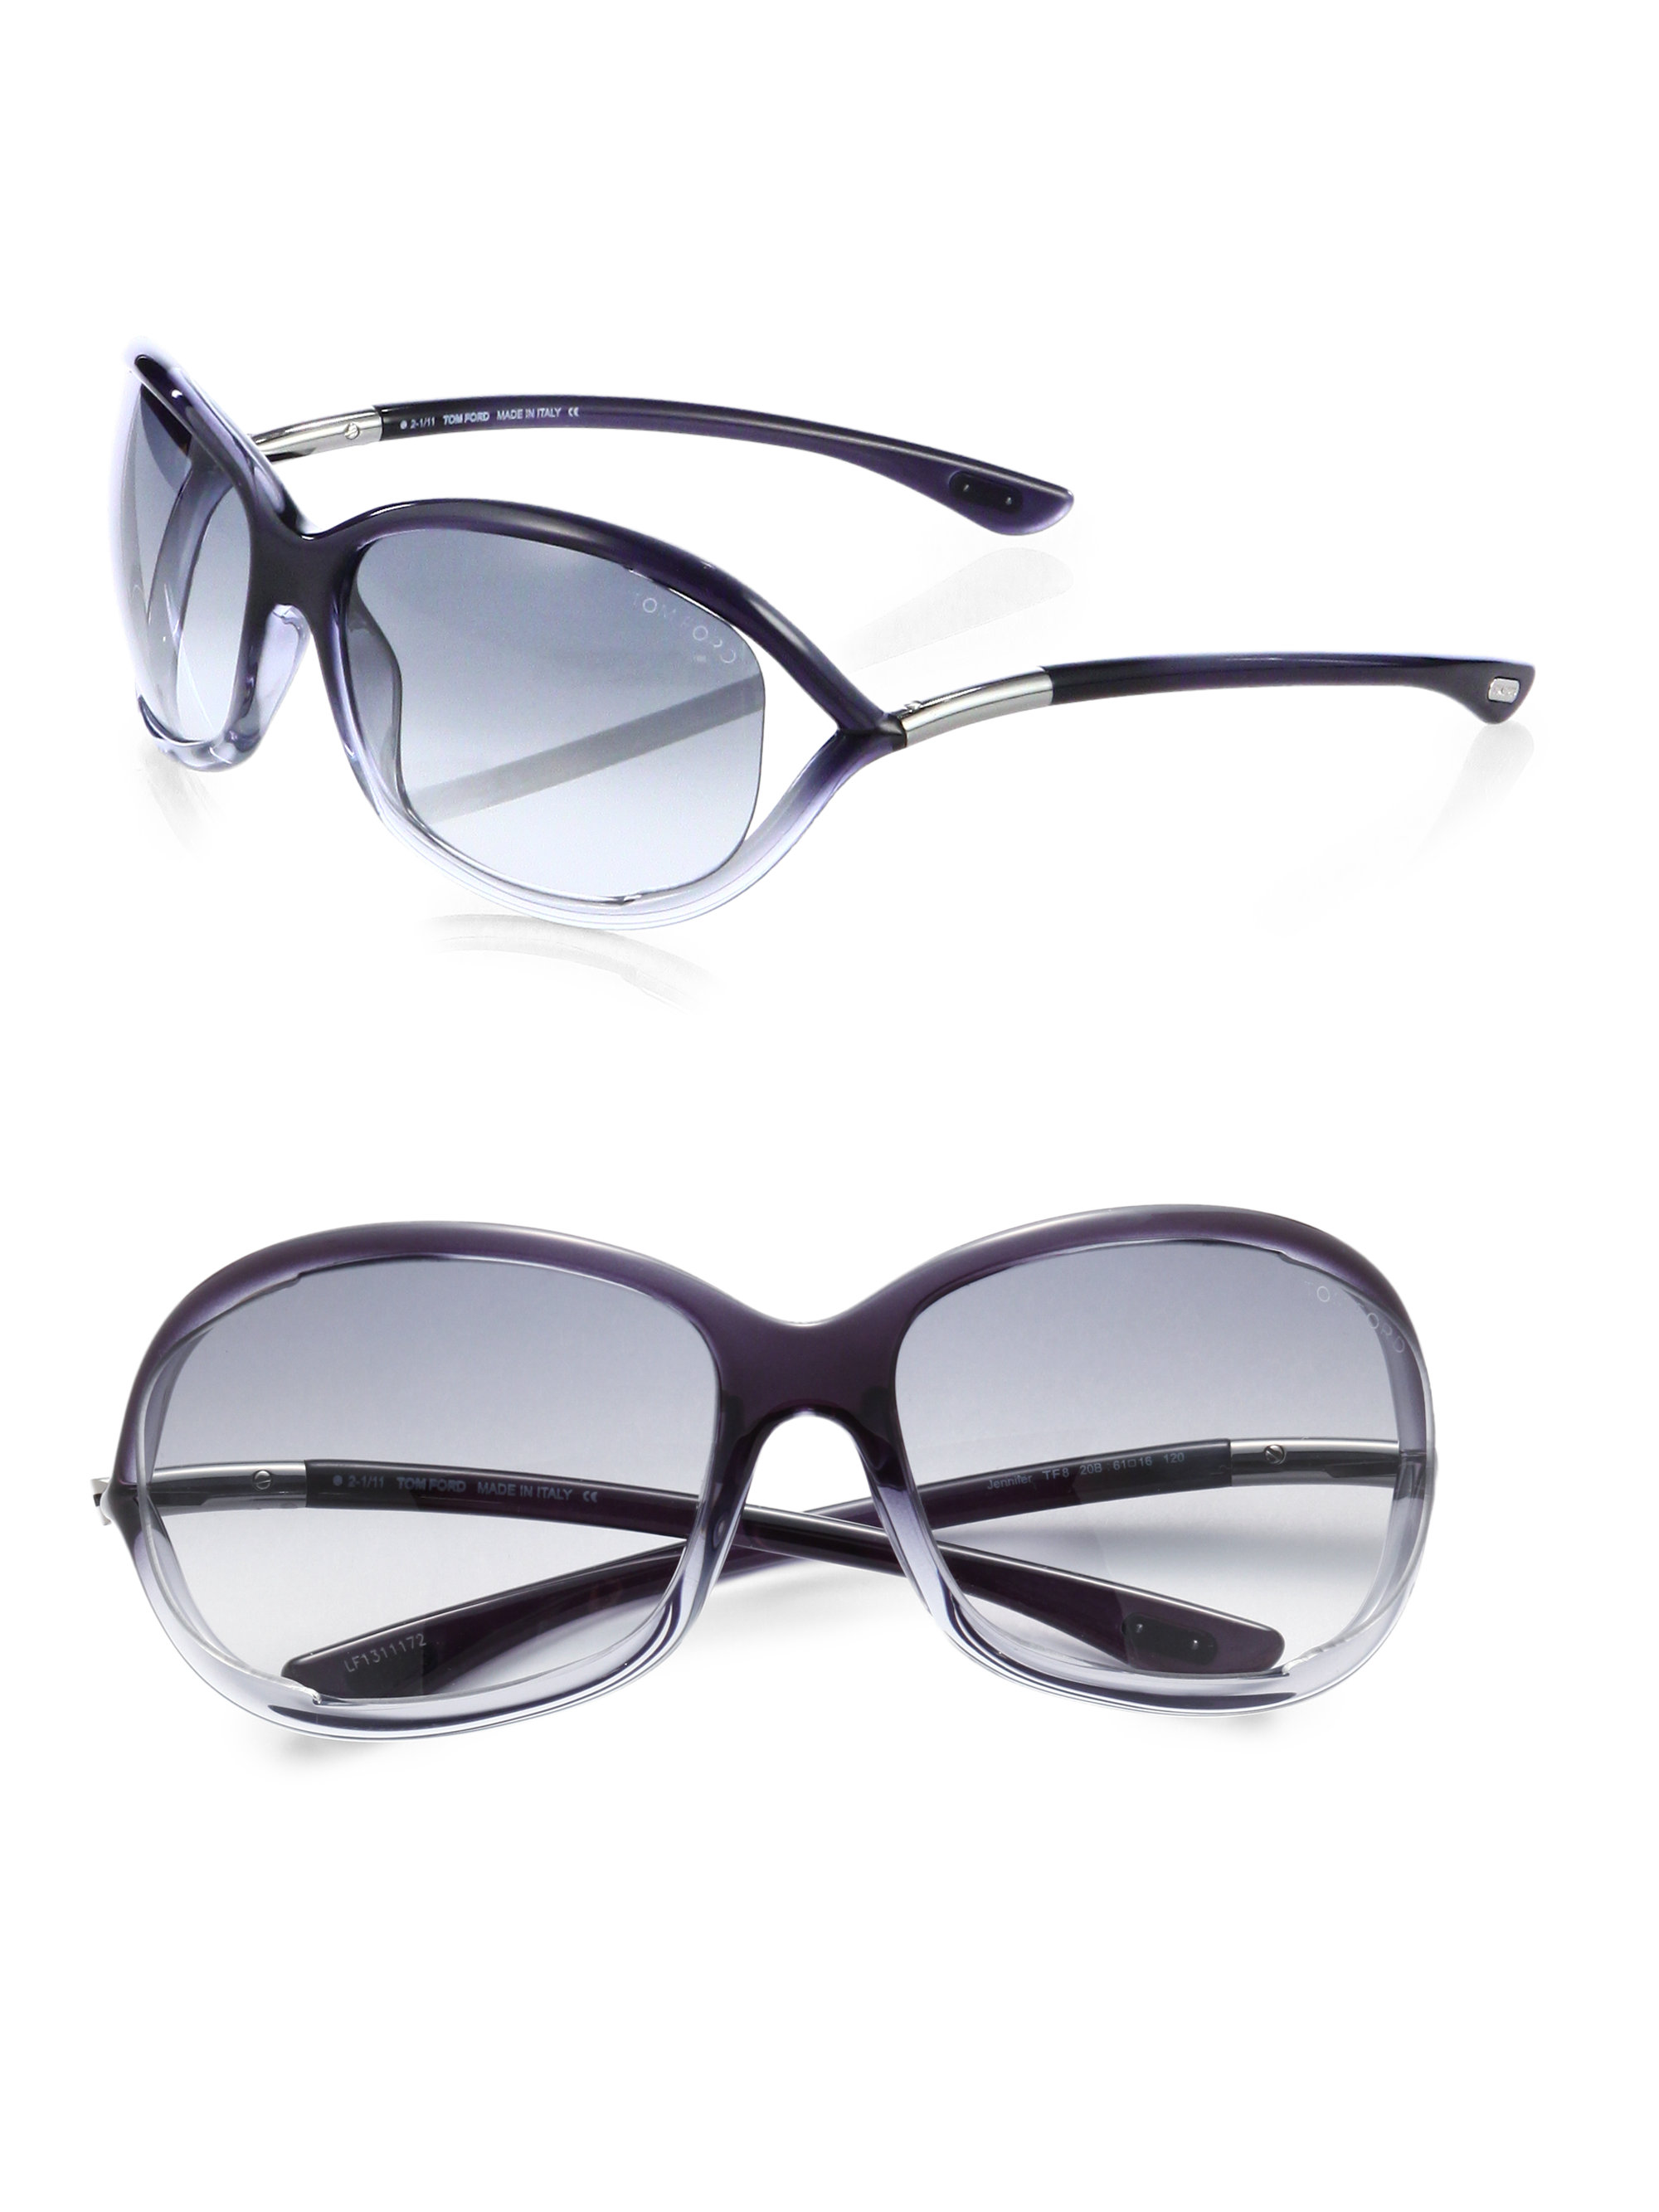 tom ford jennifer softwrap sunglasses in gray lyst. Cars Review. Best American Auto & Cars Review